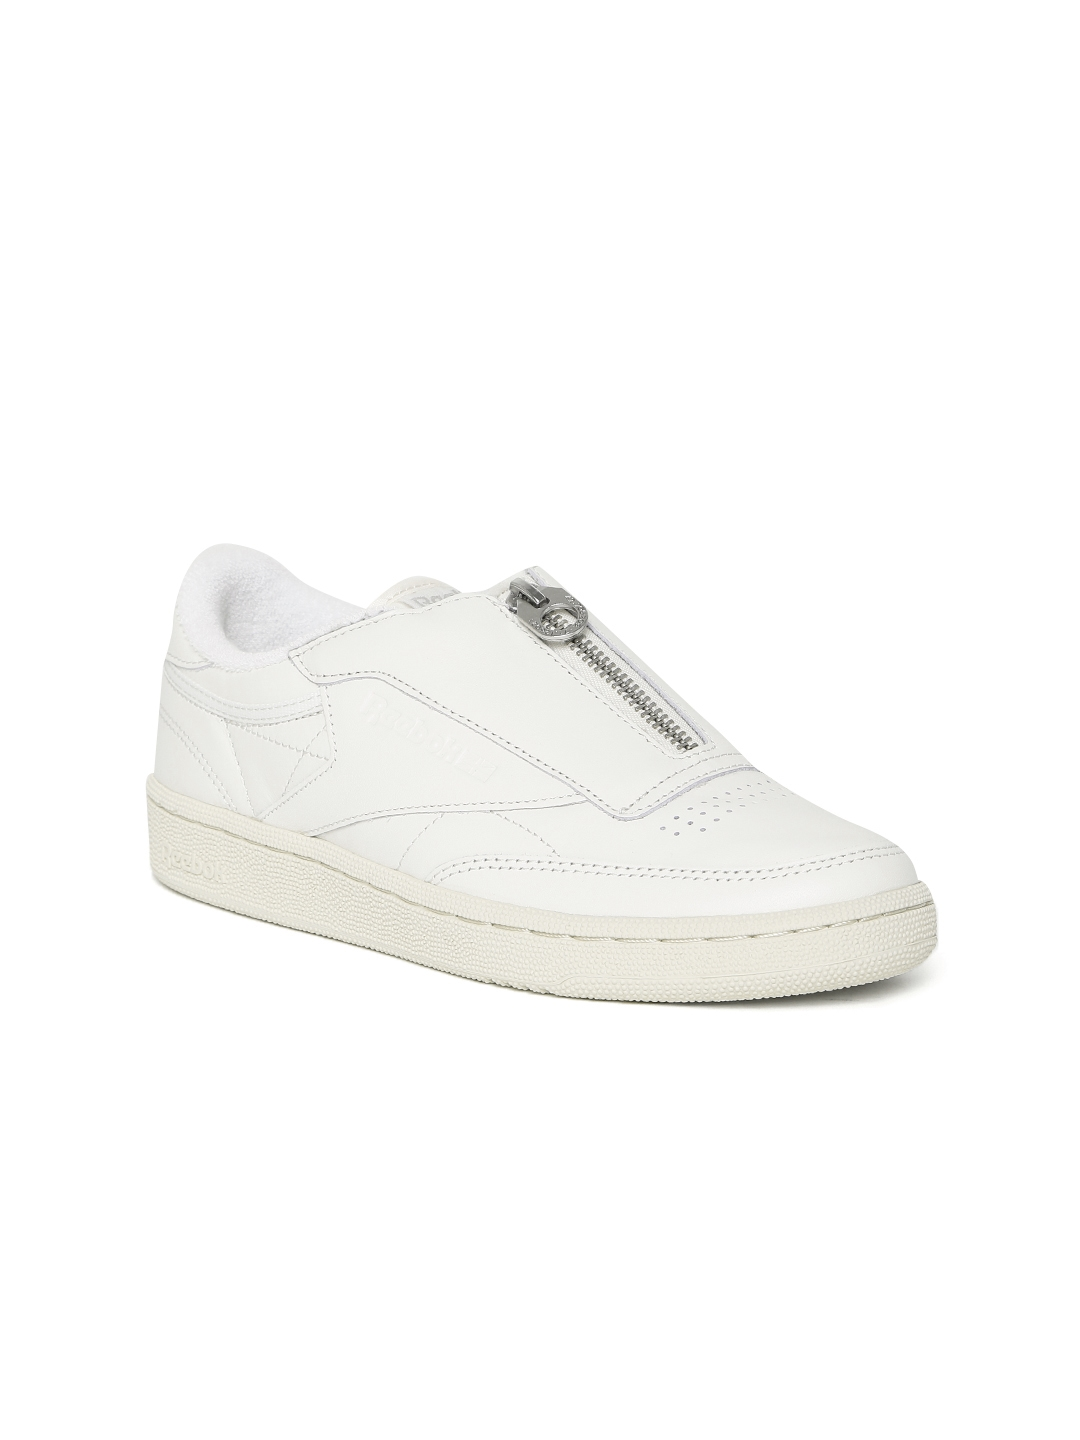 686687420594c Reebok Classic Women Off-White Club C 85 Zip Leather Slip-On Sneakers